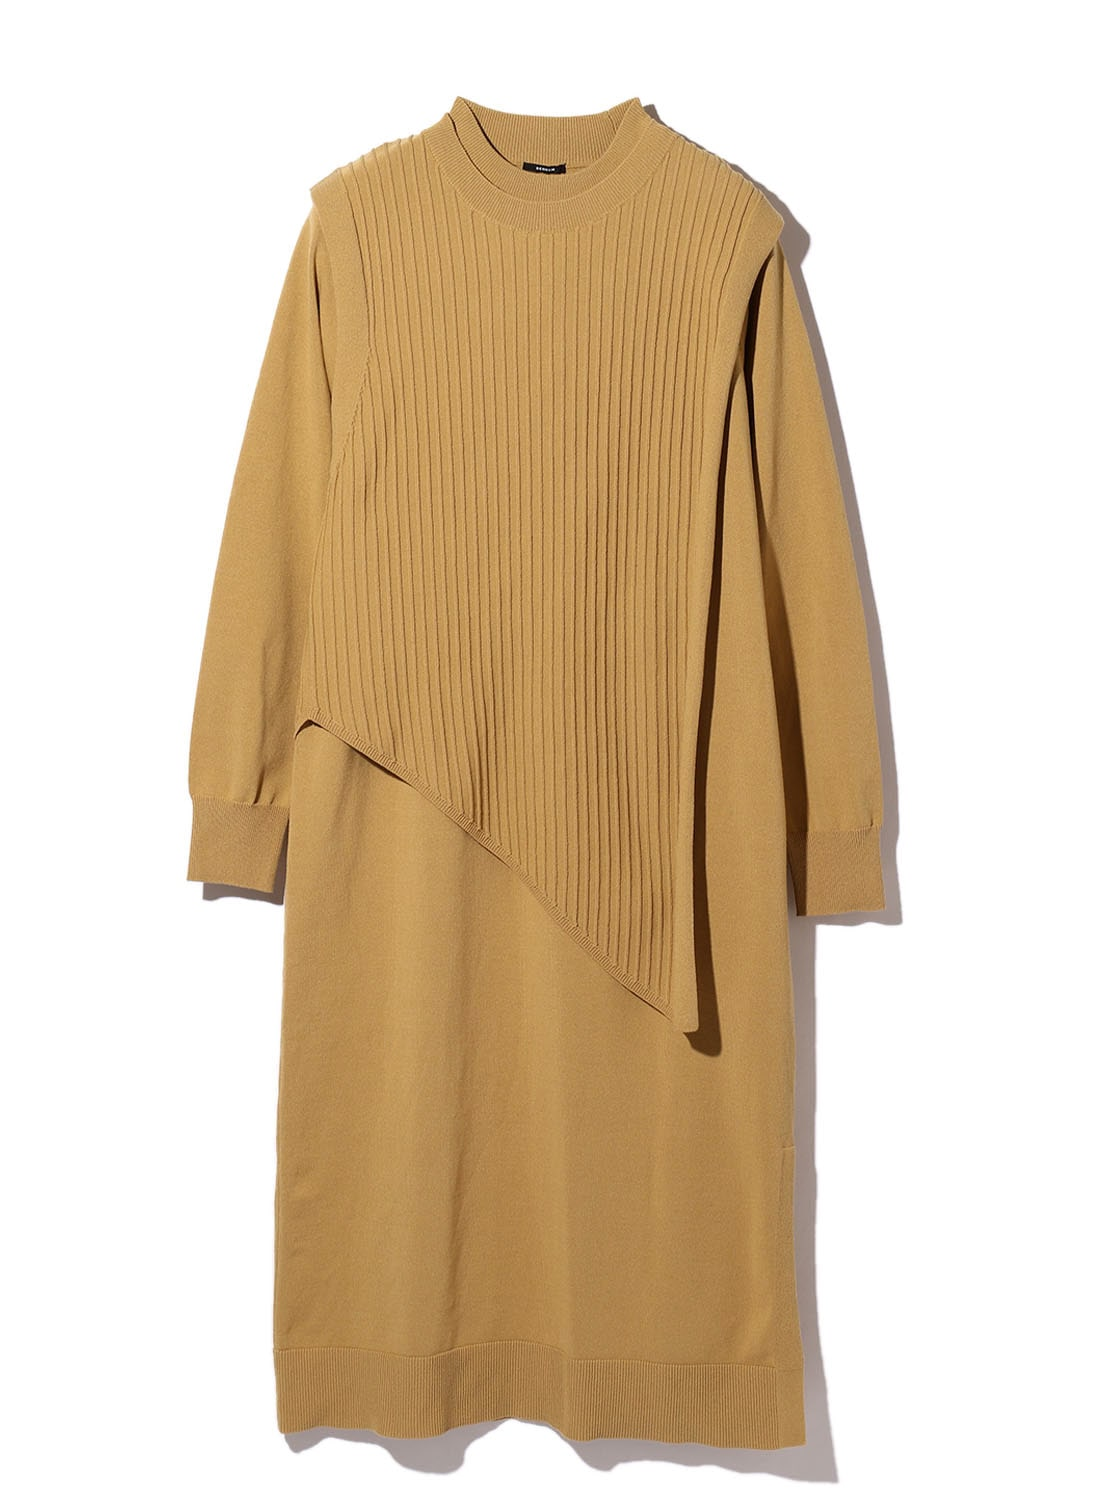 【日本限定】 GOUDA KNIT DRESS